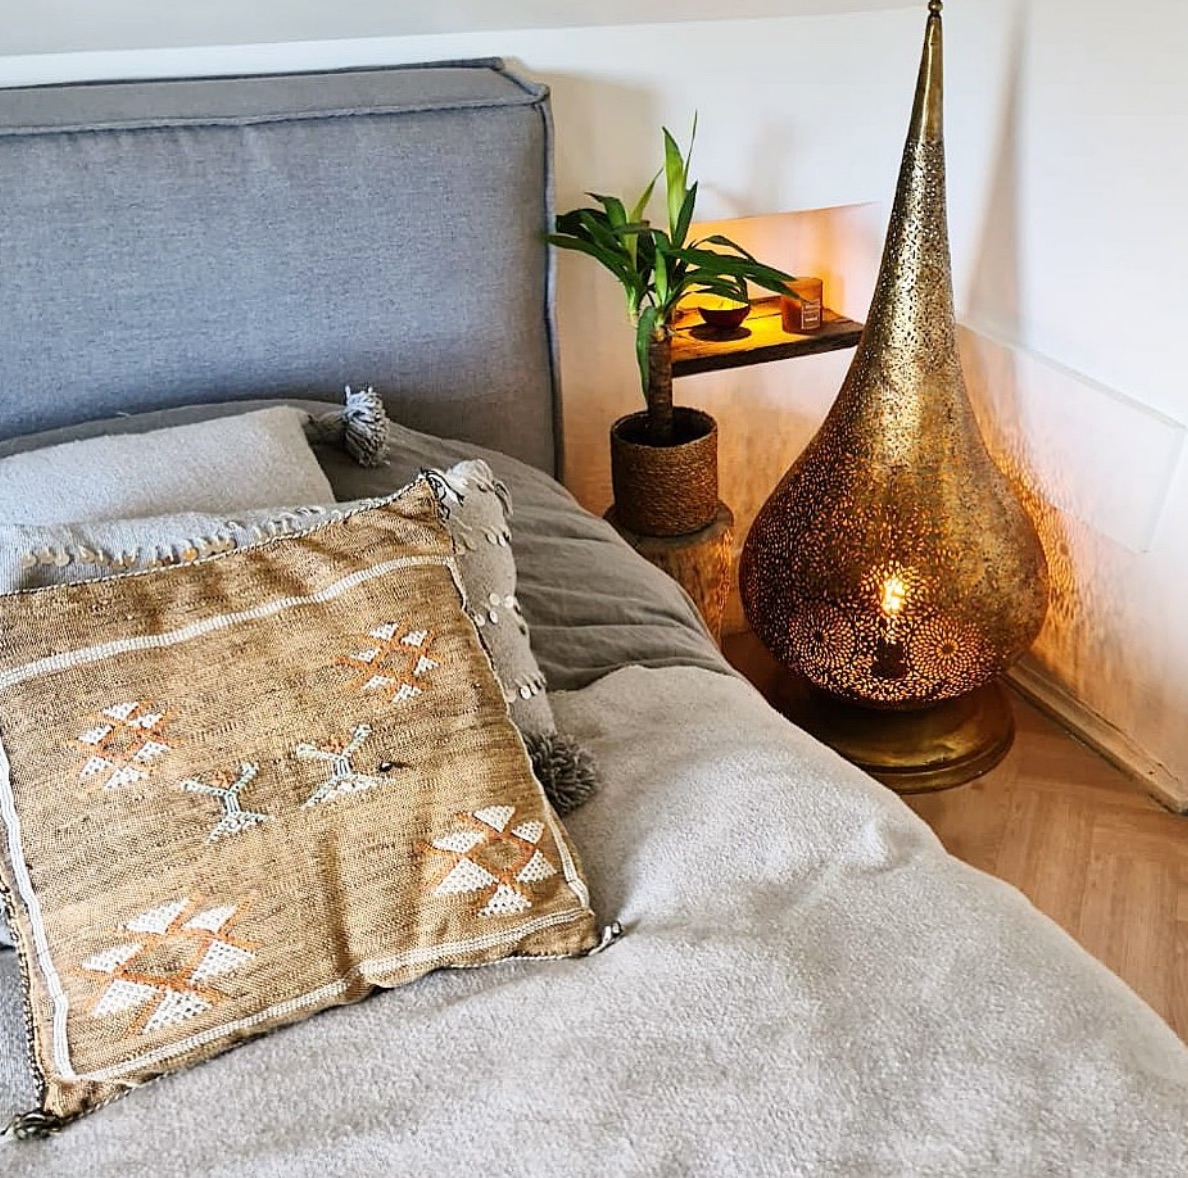 Moroccan floor lamp in bedroom